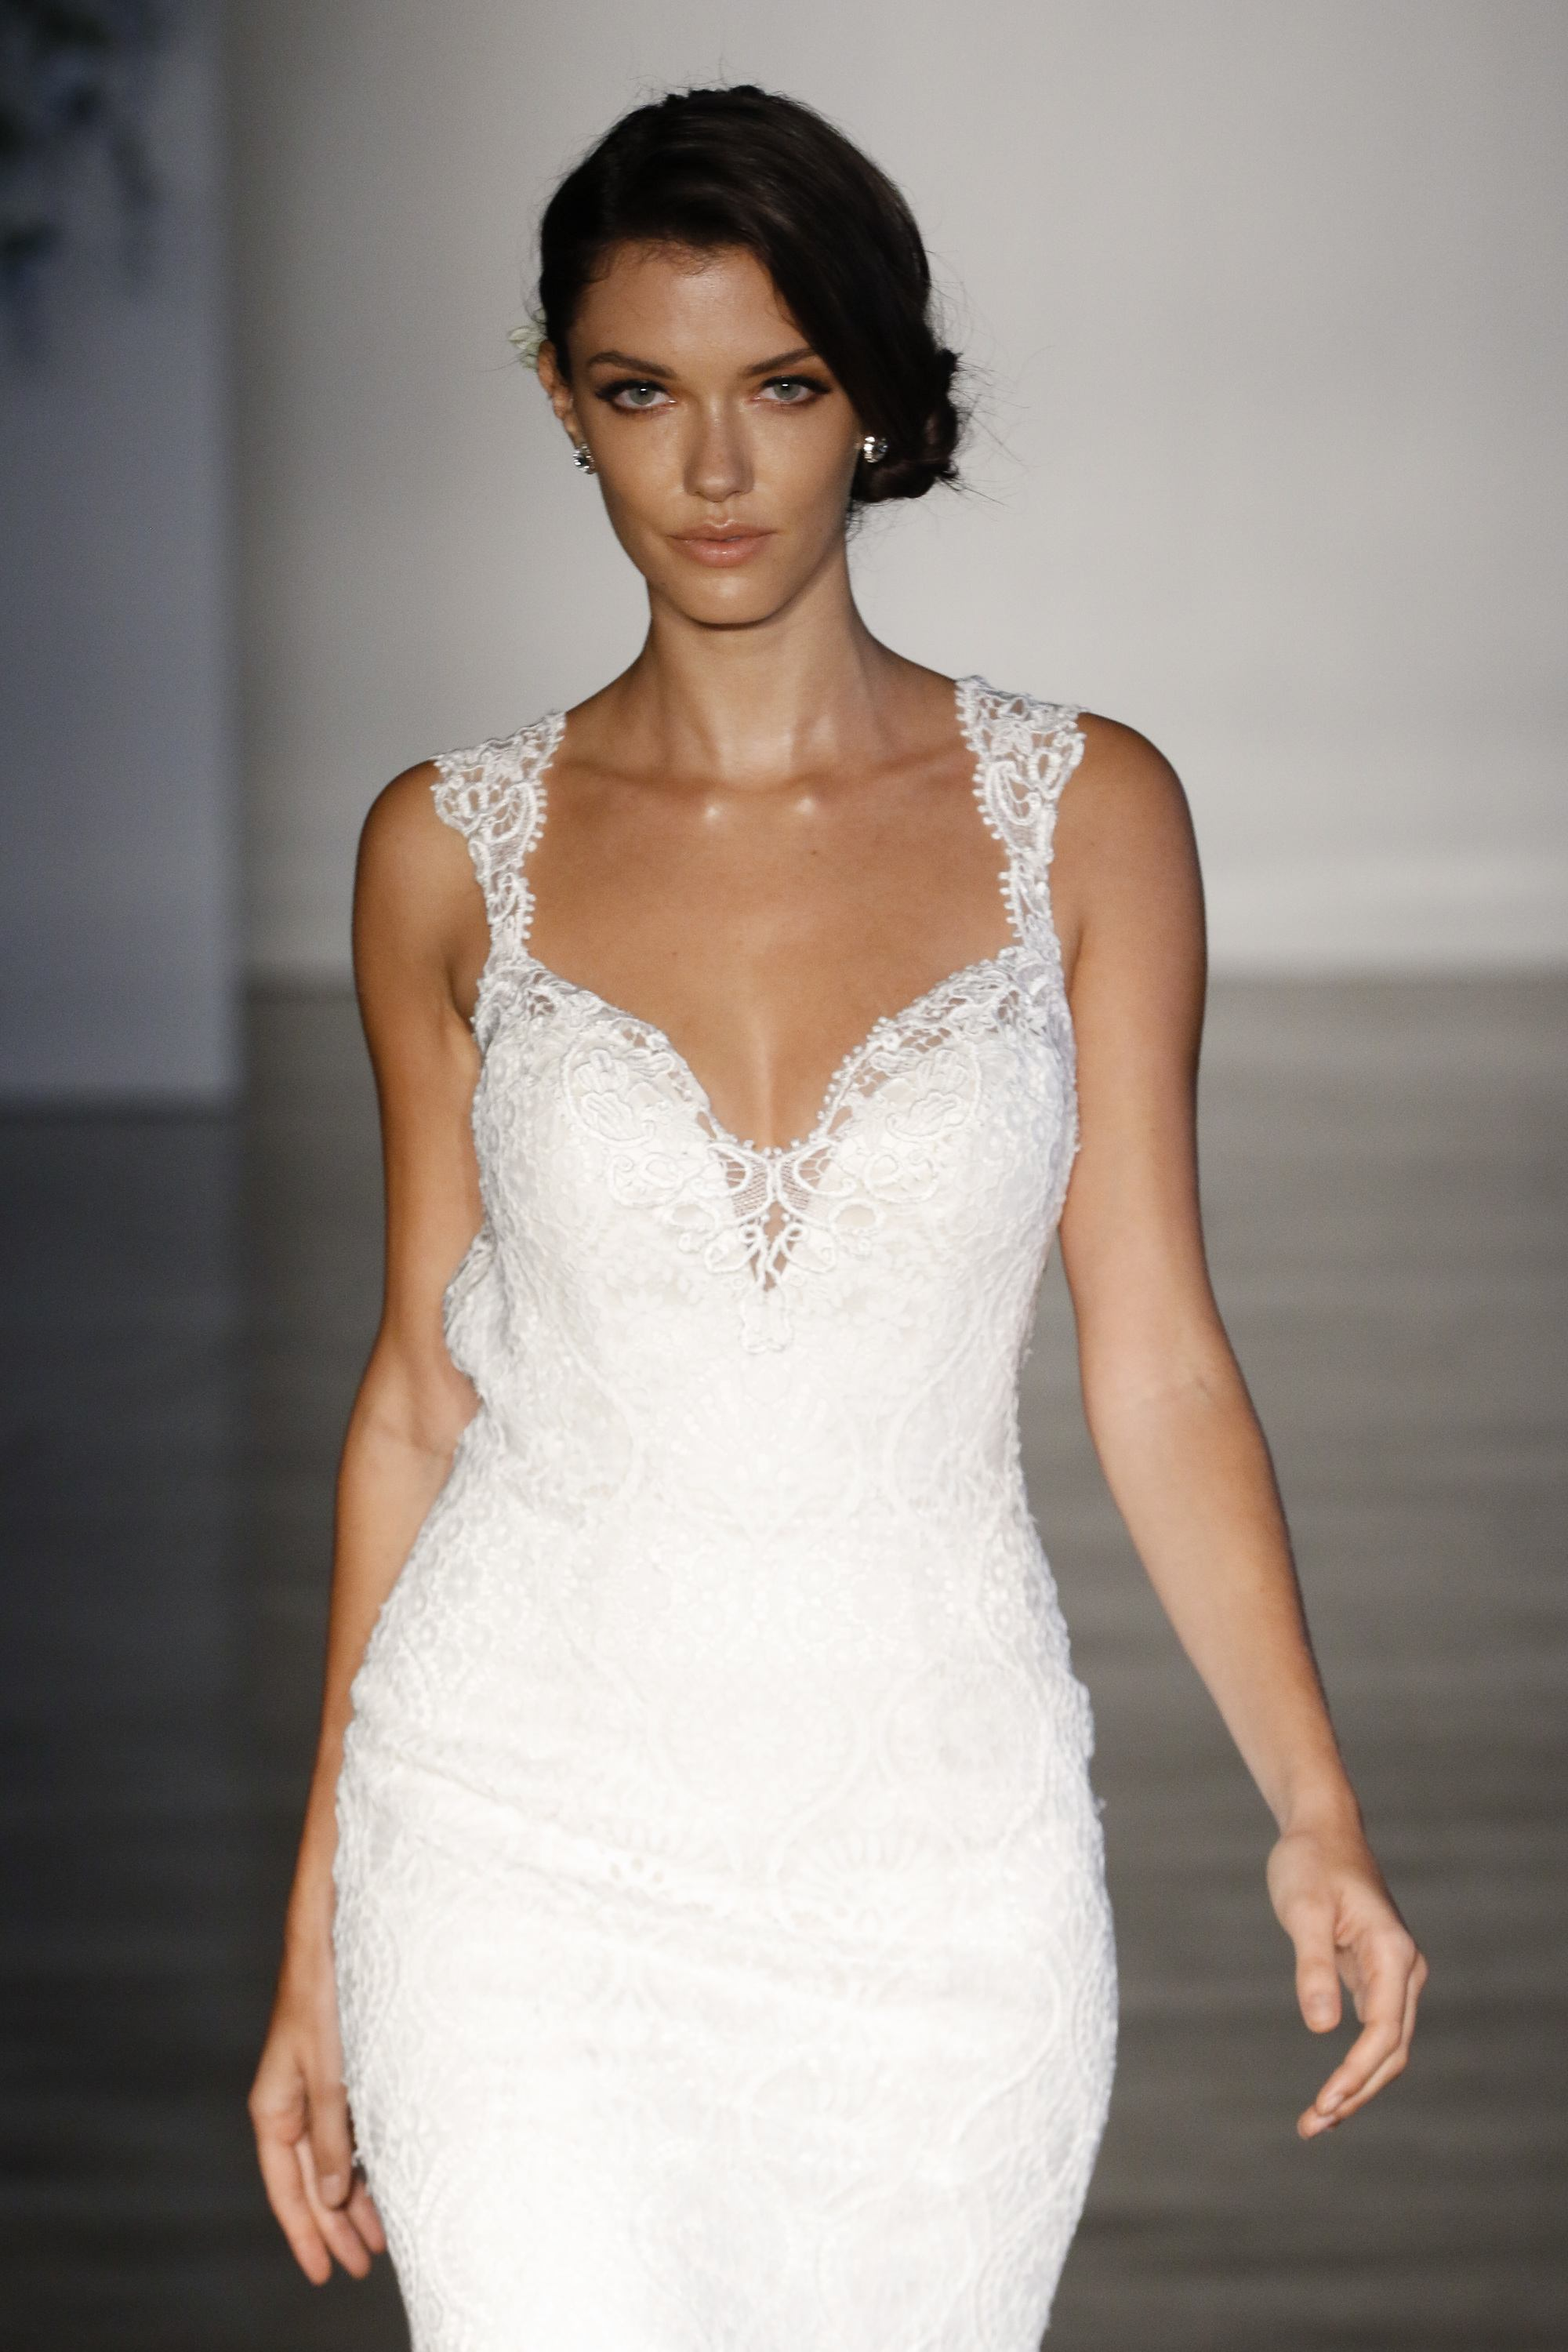 brunette bridal model on the runway with a side chignon hairstyle